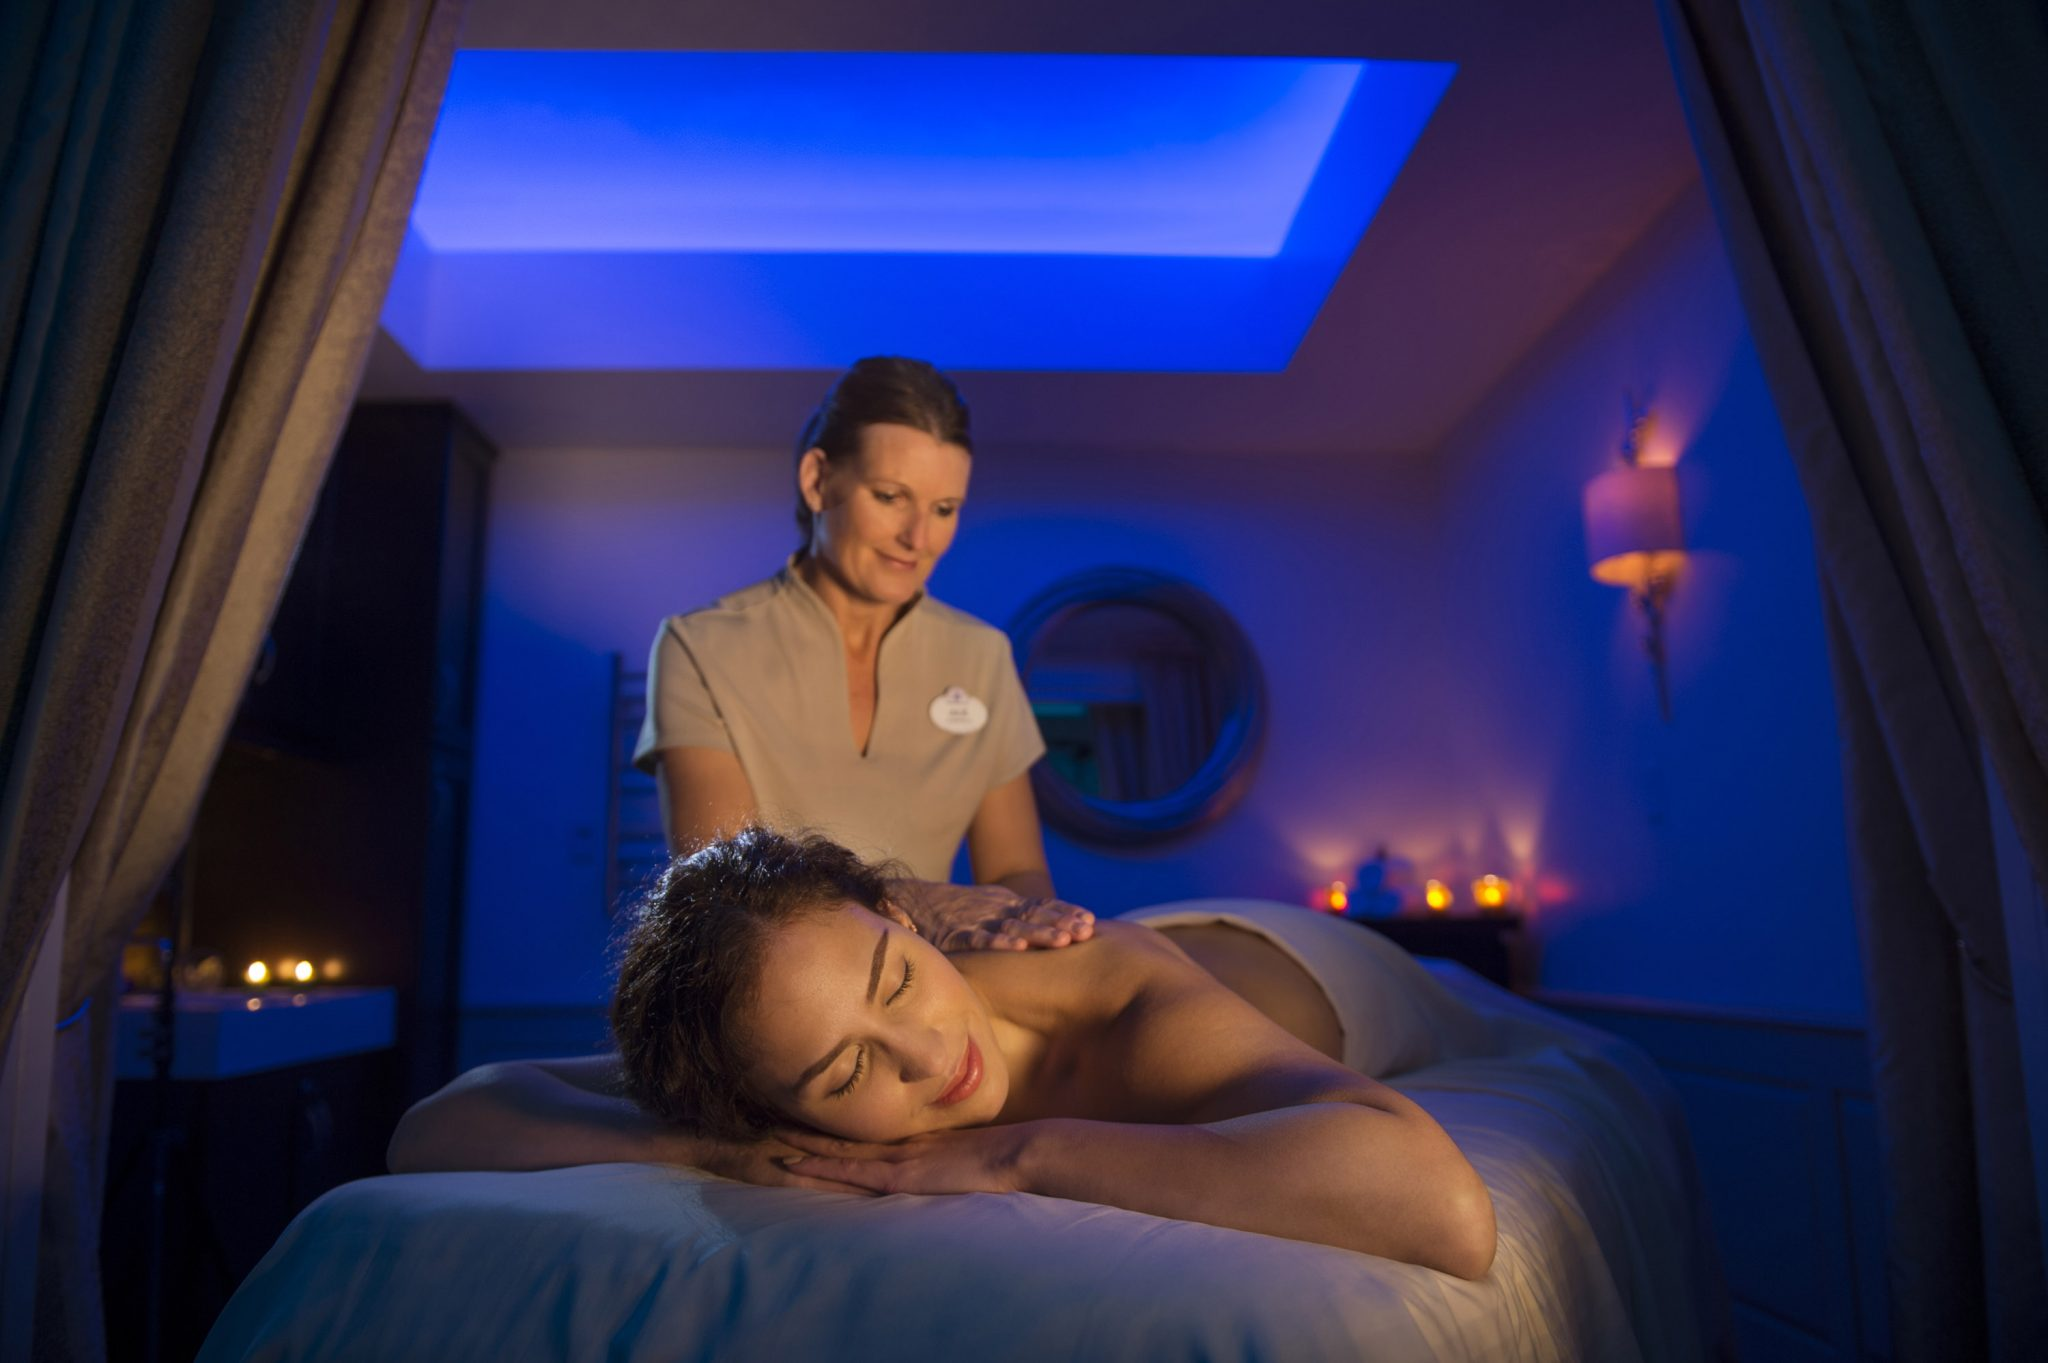 Therapists will balance wellness with the ultimate in pampering at Senses, a Disney Spa at DisneyÕs Grand Floridian Resort. All the senses are engaged in a relaxing environment sure to revive and renew from head to toe. The full-service Disney owned and operated spa offers a menu of services from warm stone massage and mint hydrating body treatment to coconut facials and princess pedicures for youngsters. The spa is set to open Dec. 17 at Walt Disney World Resort in Lake Buena Vista, Fla. (Kent Phillips, photographer)